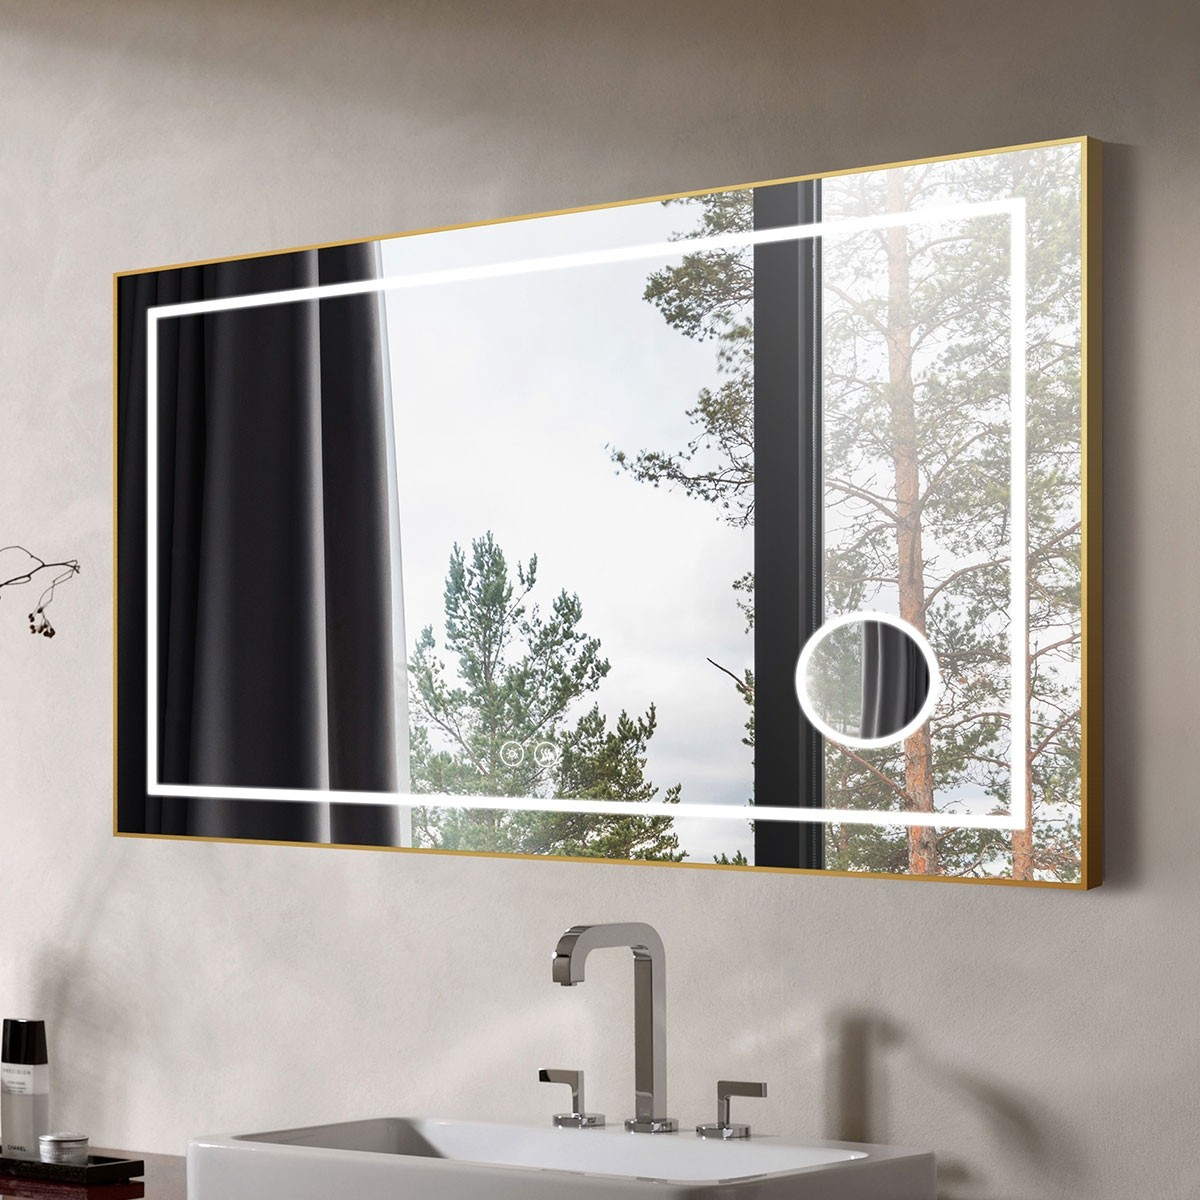 DECORAPORT 55 x 36 Inch LED Bathroom Mirror with Touch Button, Light Luxury Gold, Anti Fog, Dimmable, Bluetooth Speakers, Magnifier, Horizontal Mount (D721-5536AC)